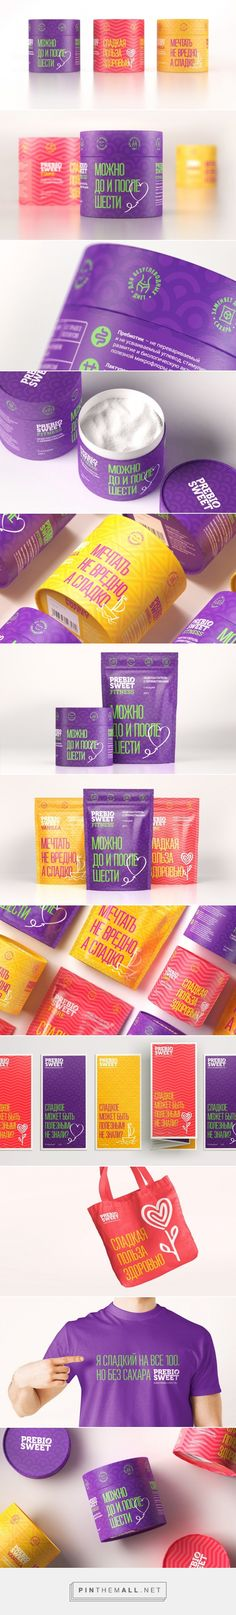 PrebioSweet Sweetener packaging design by Wunderbar (Russia) - http://www.packagingoftheworld.com/2016/06/prebiosweet.html